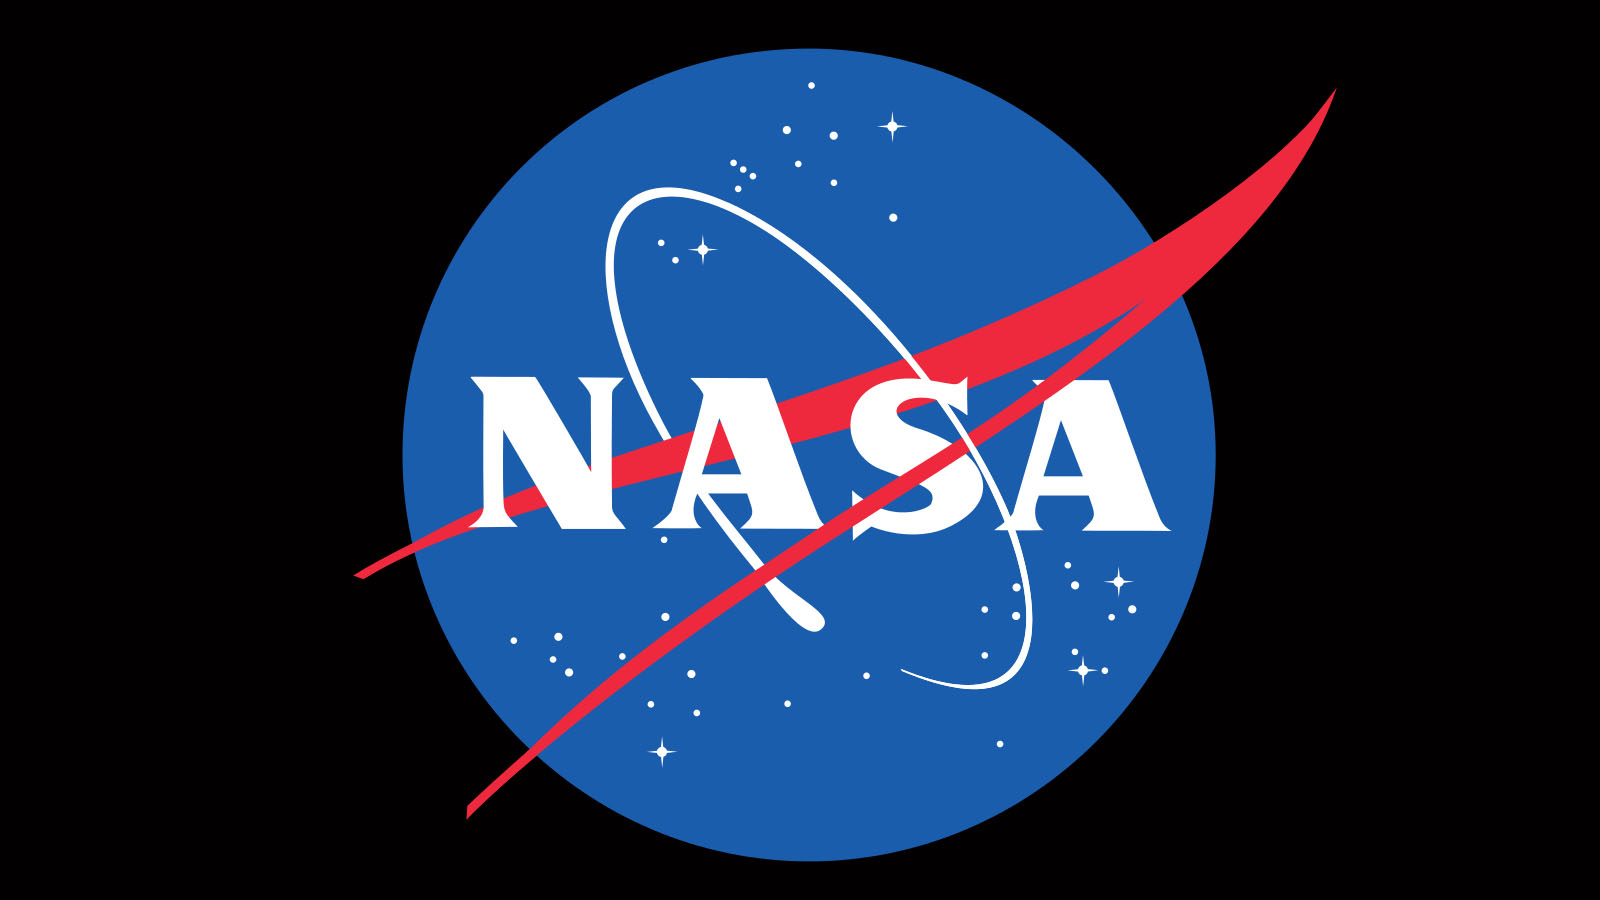 NASA has chosen Washington-based Aerojet Rocketdyne to design and develop an advanced electric propulsion system that will significantly advance the nation's commercial space capabilities, and enable deep space exploration missions, including the robotic portion of NASA?s Asteroid Redirect Mission (ARM) and its Journey to Mars.